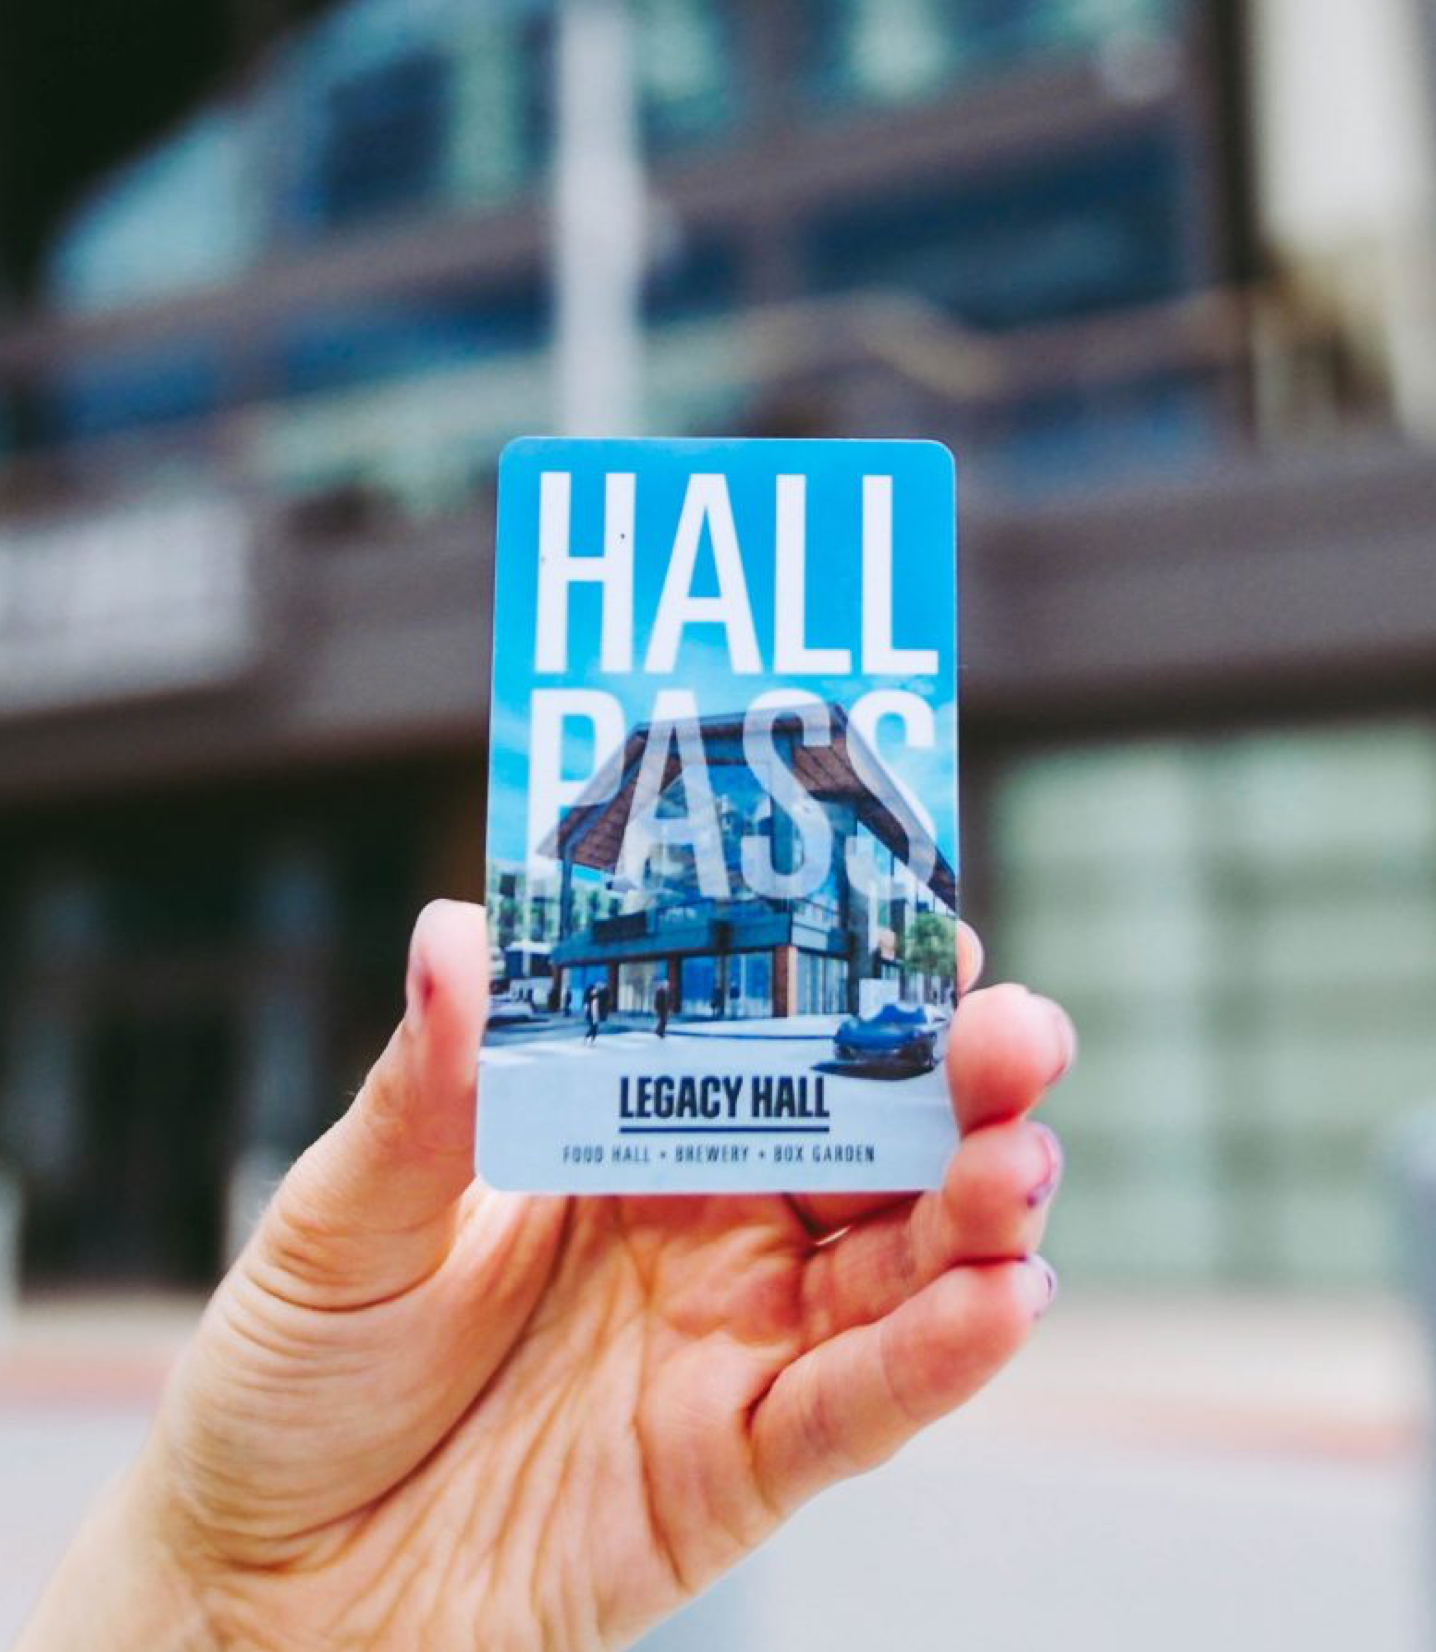 Photograph of the Hall Pass card.